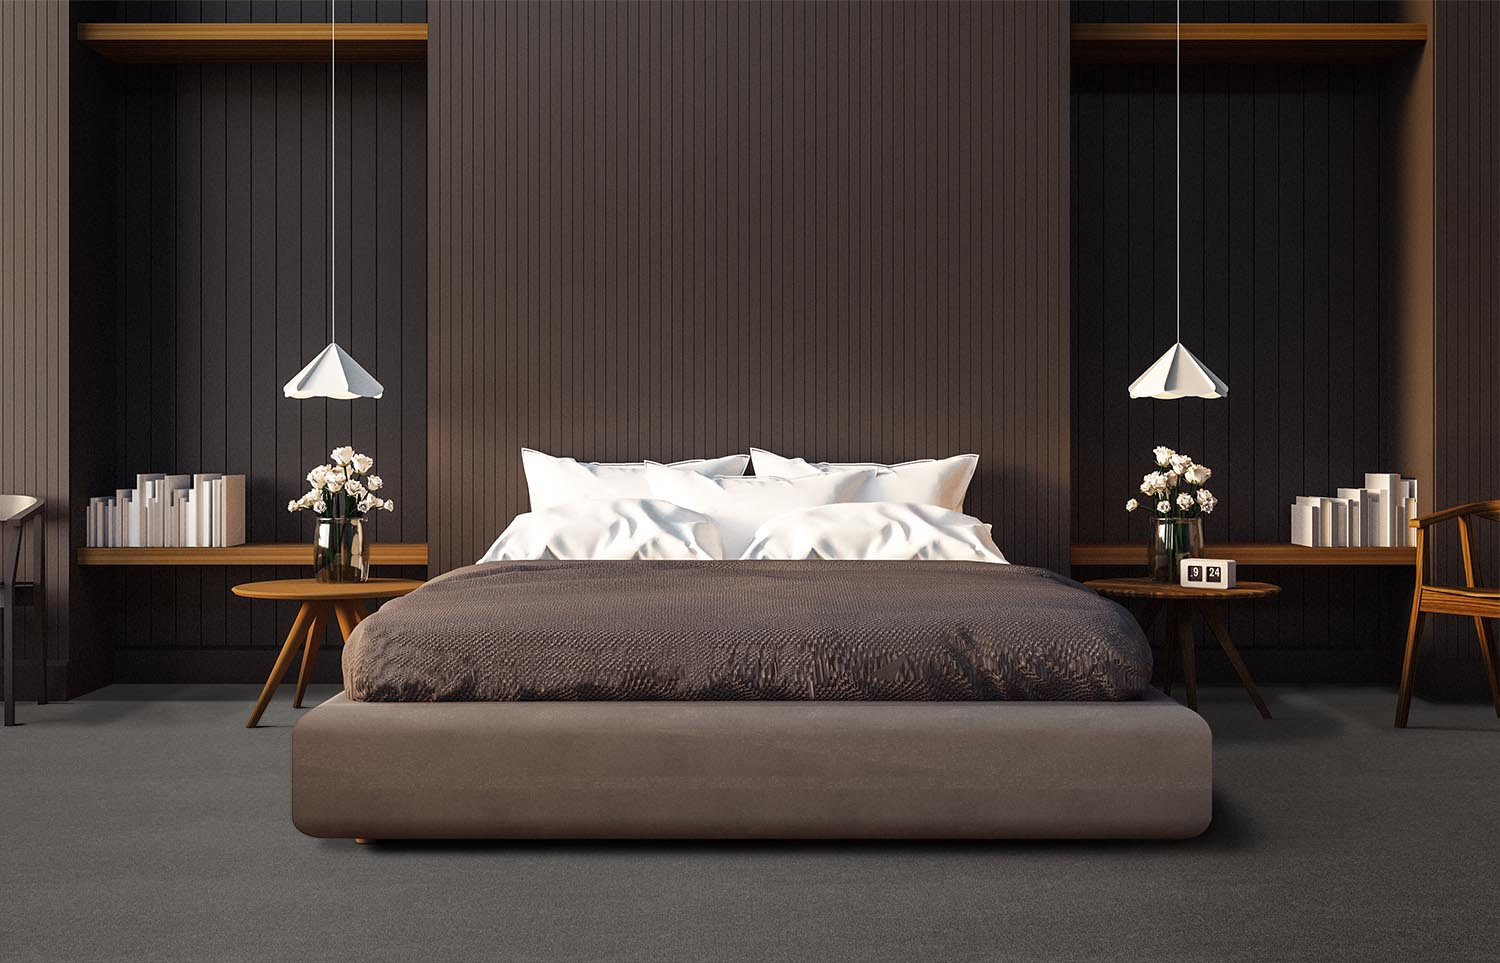 Softology - S301 - Mink contemporary bedroom